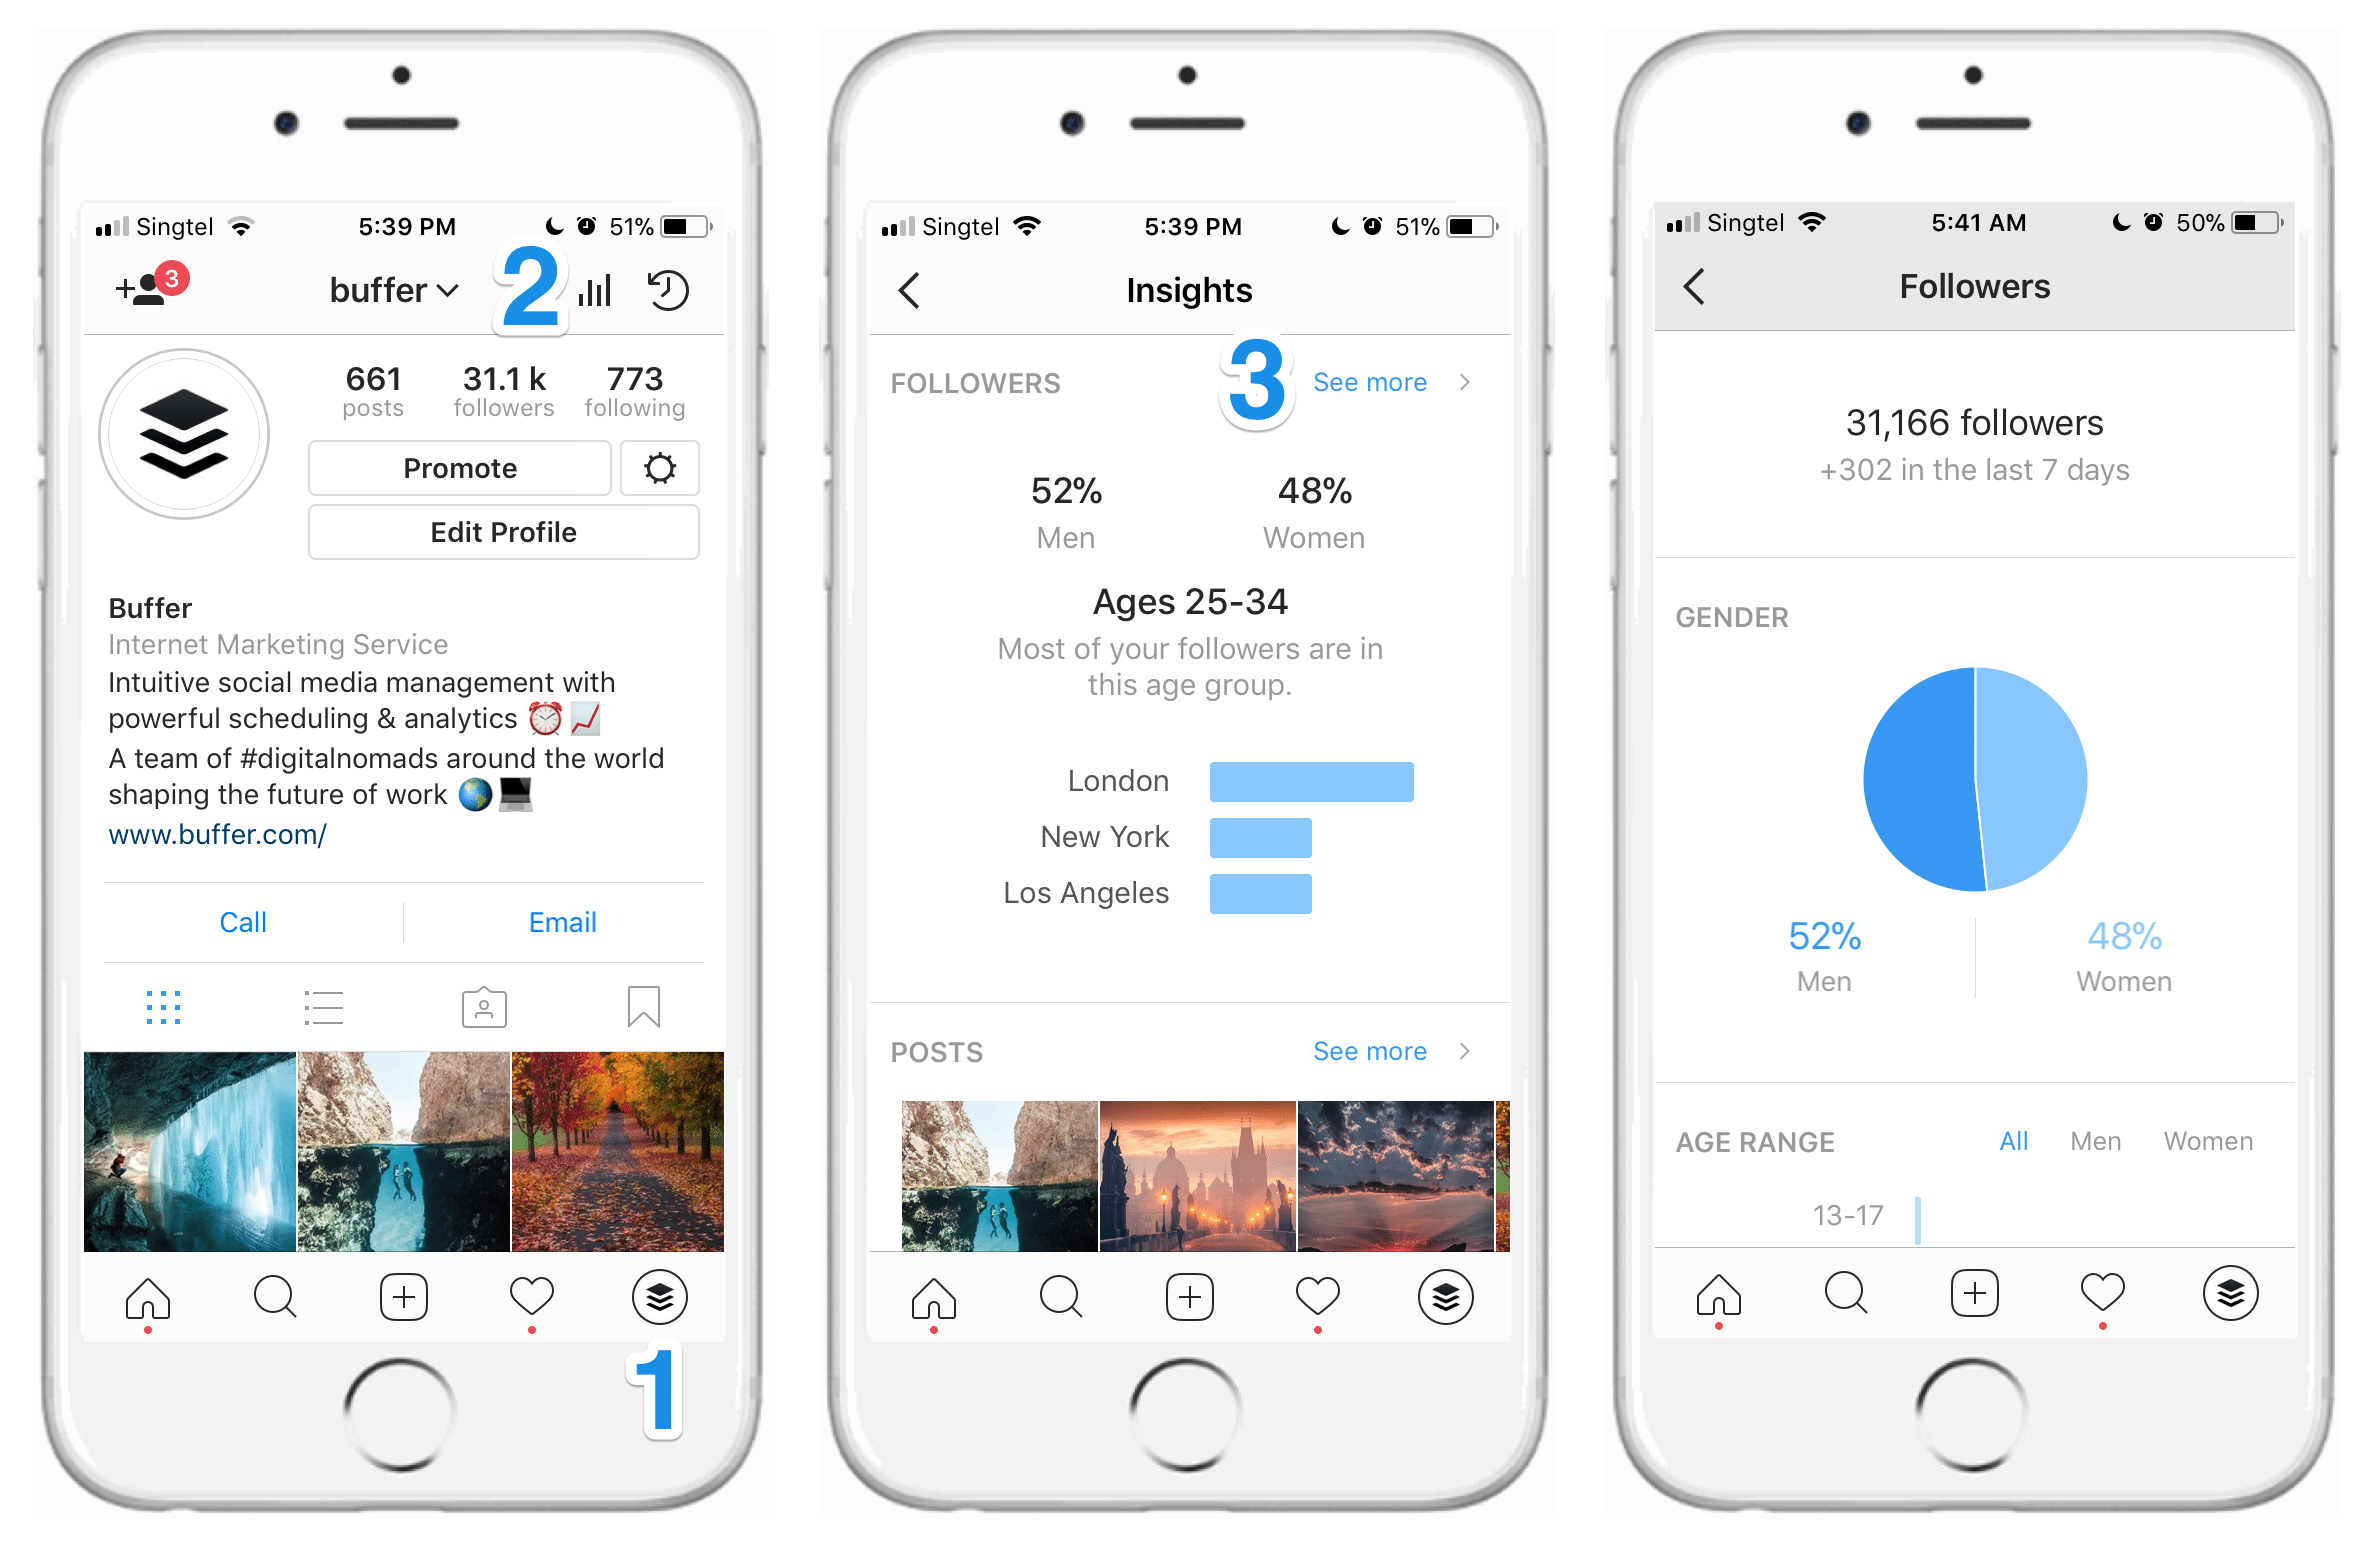 Navigating to Instagram Insights - Followers